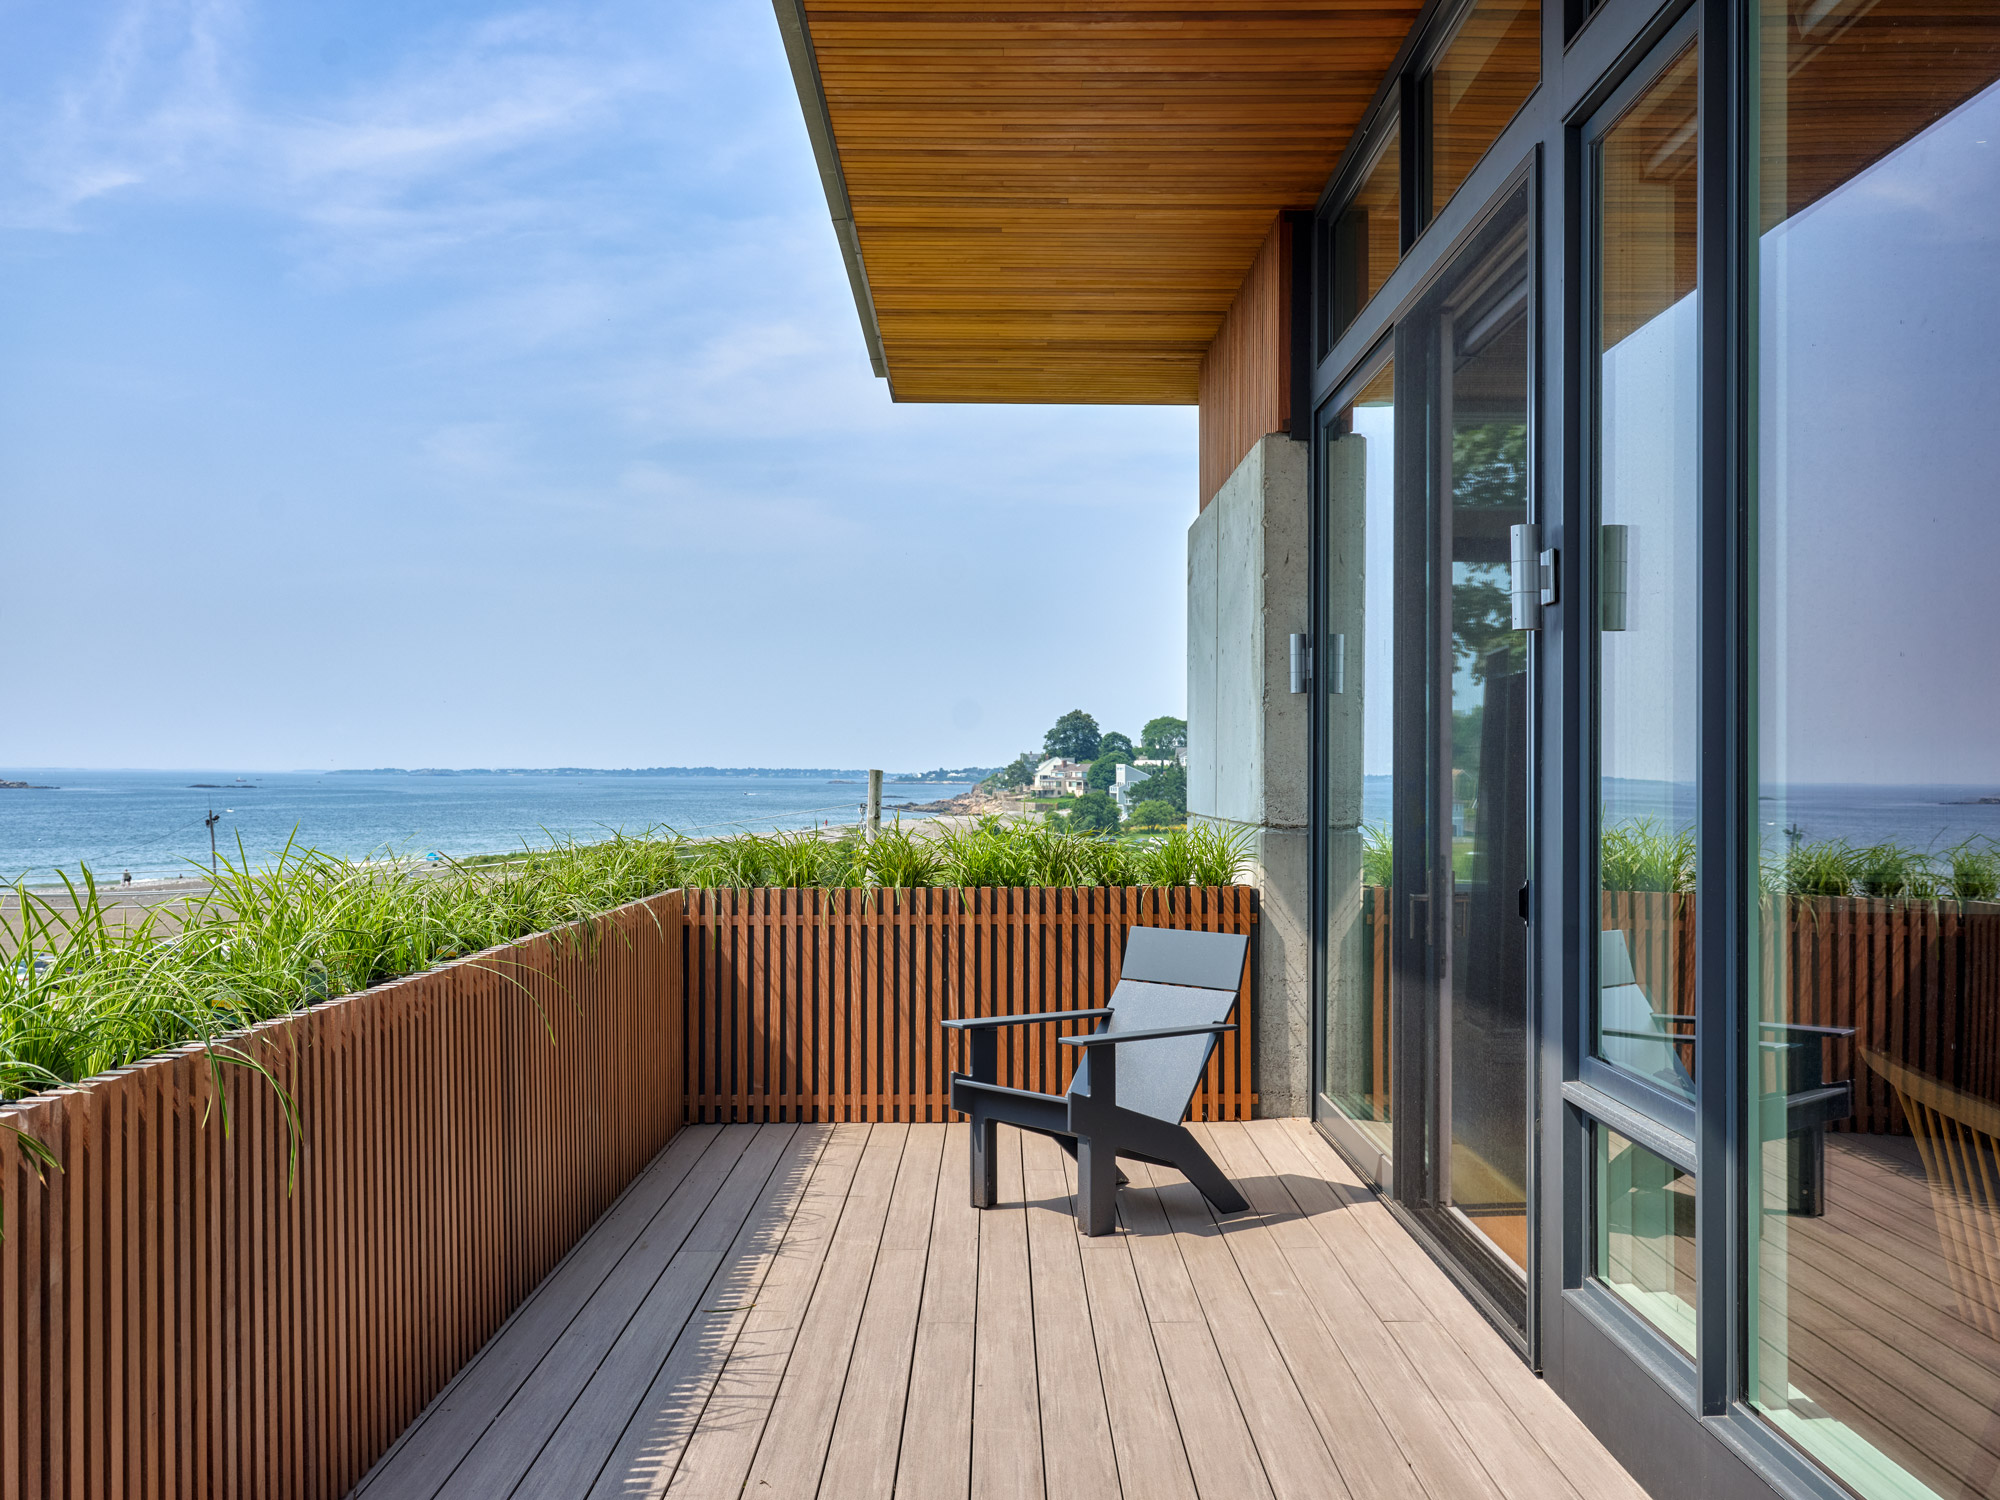 exterior deck with adirondack chair overlooking the ocean